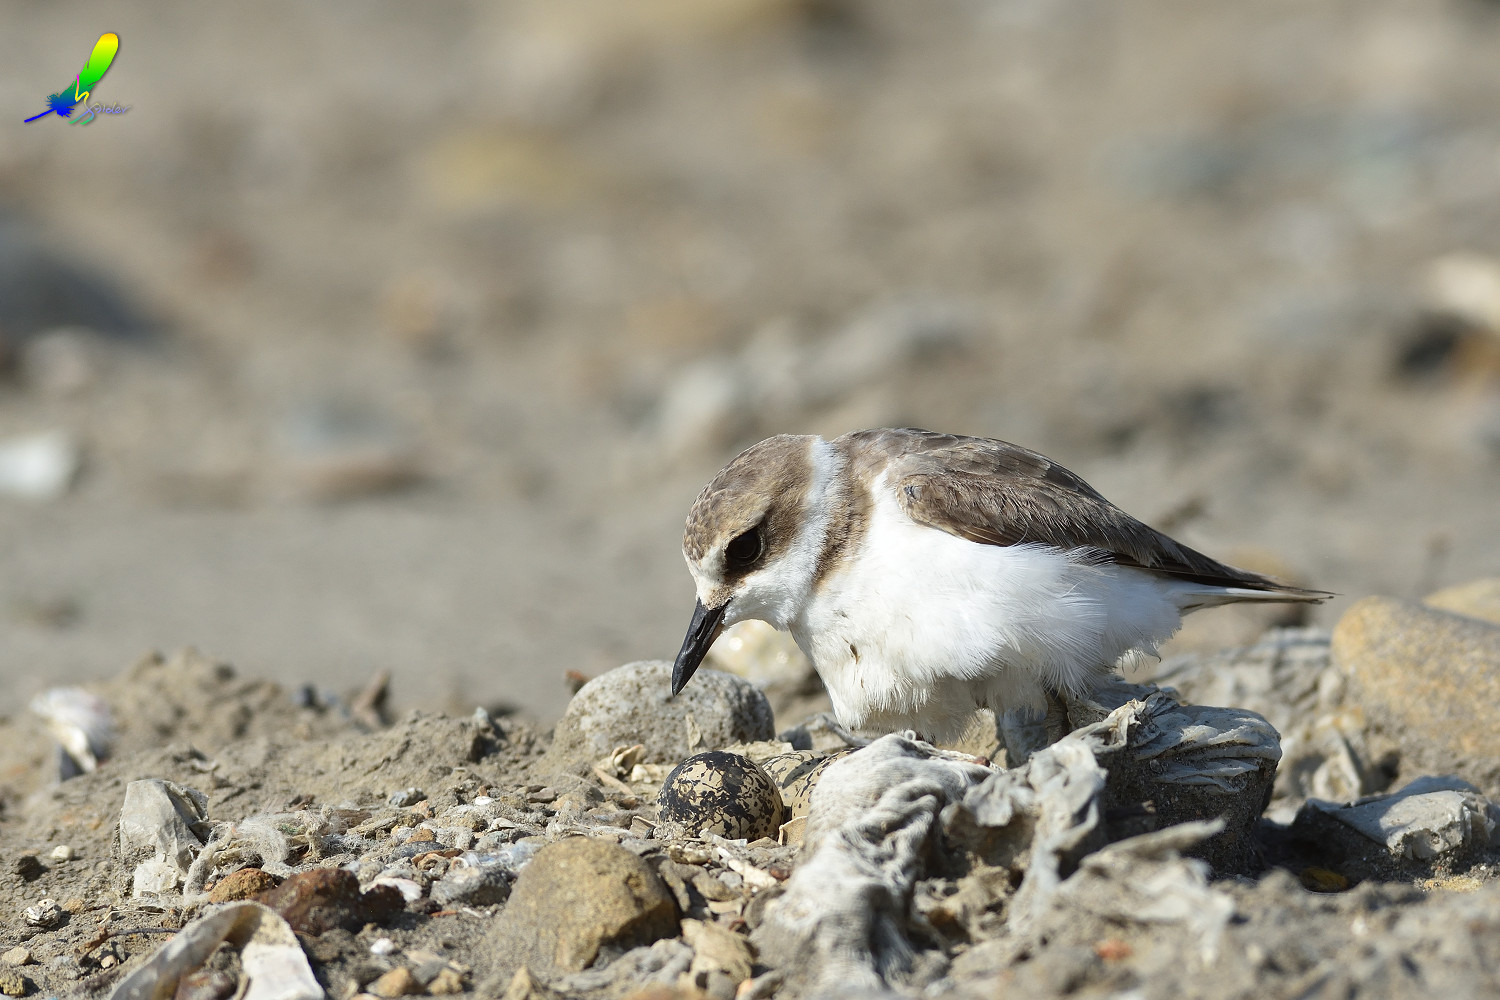 Kentish_Plover_9743